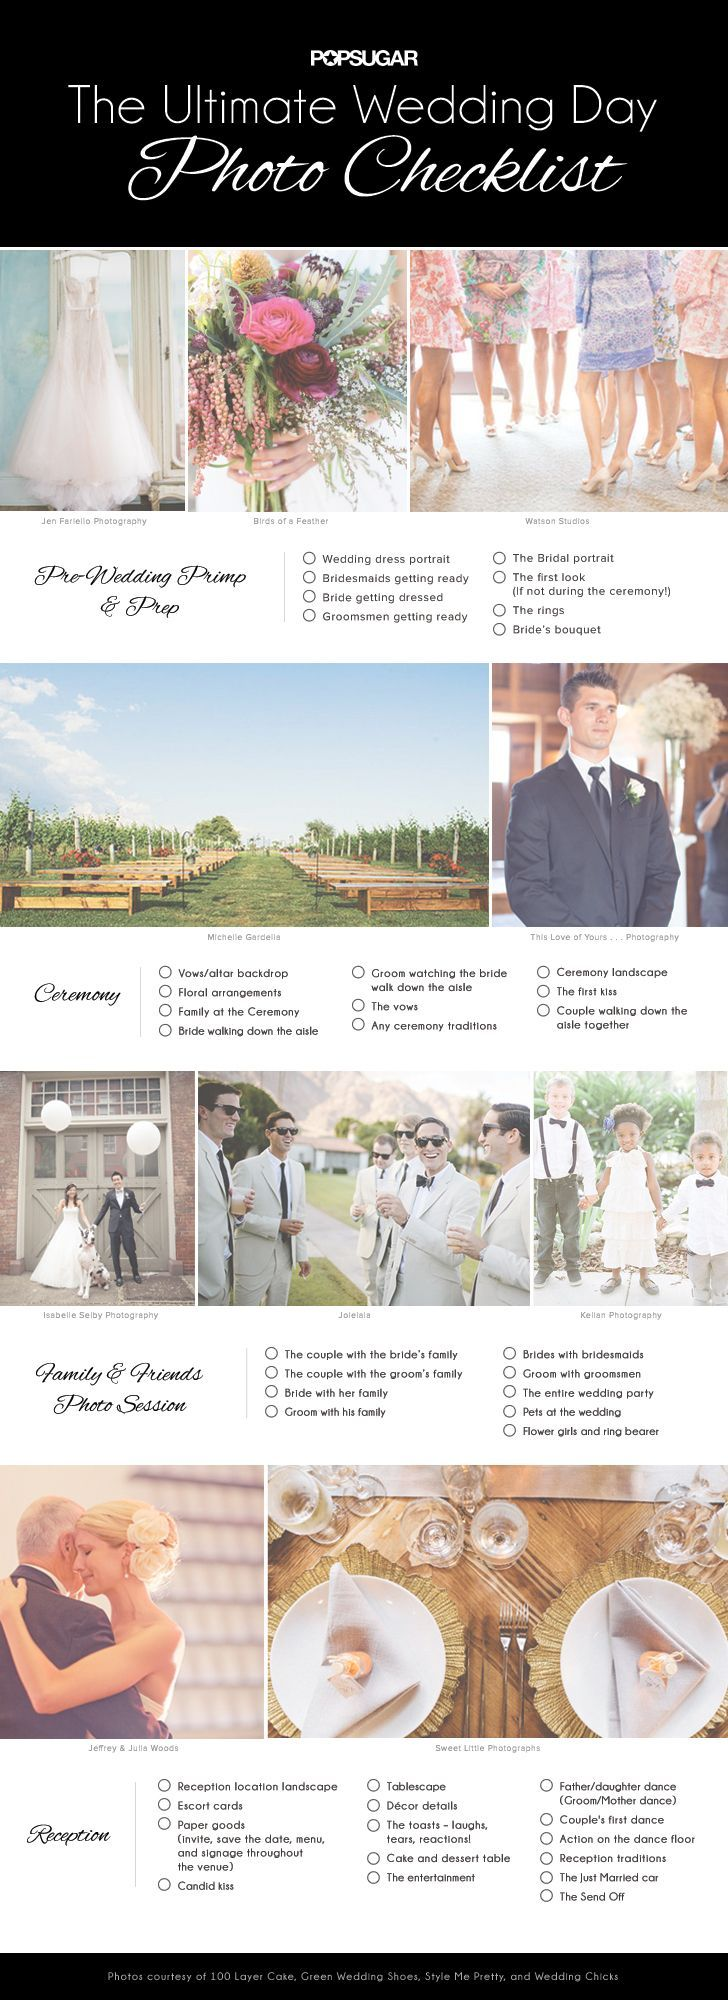 Deciding What Pictures You Want To See From Your Wedding This Photo Checklist Will Help